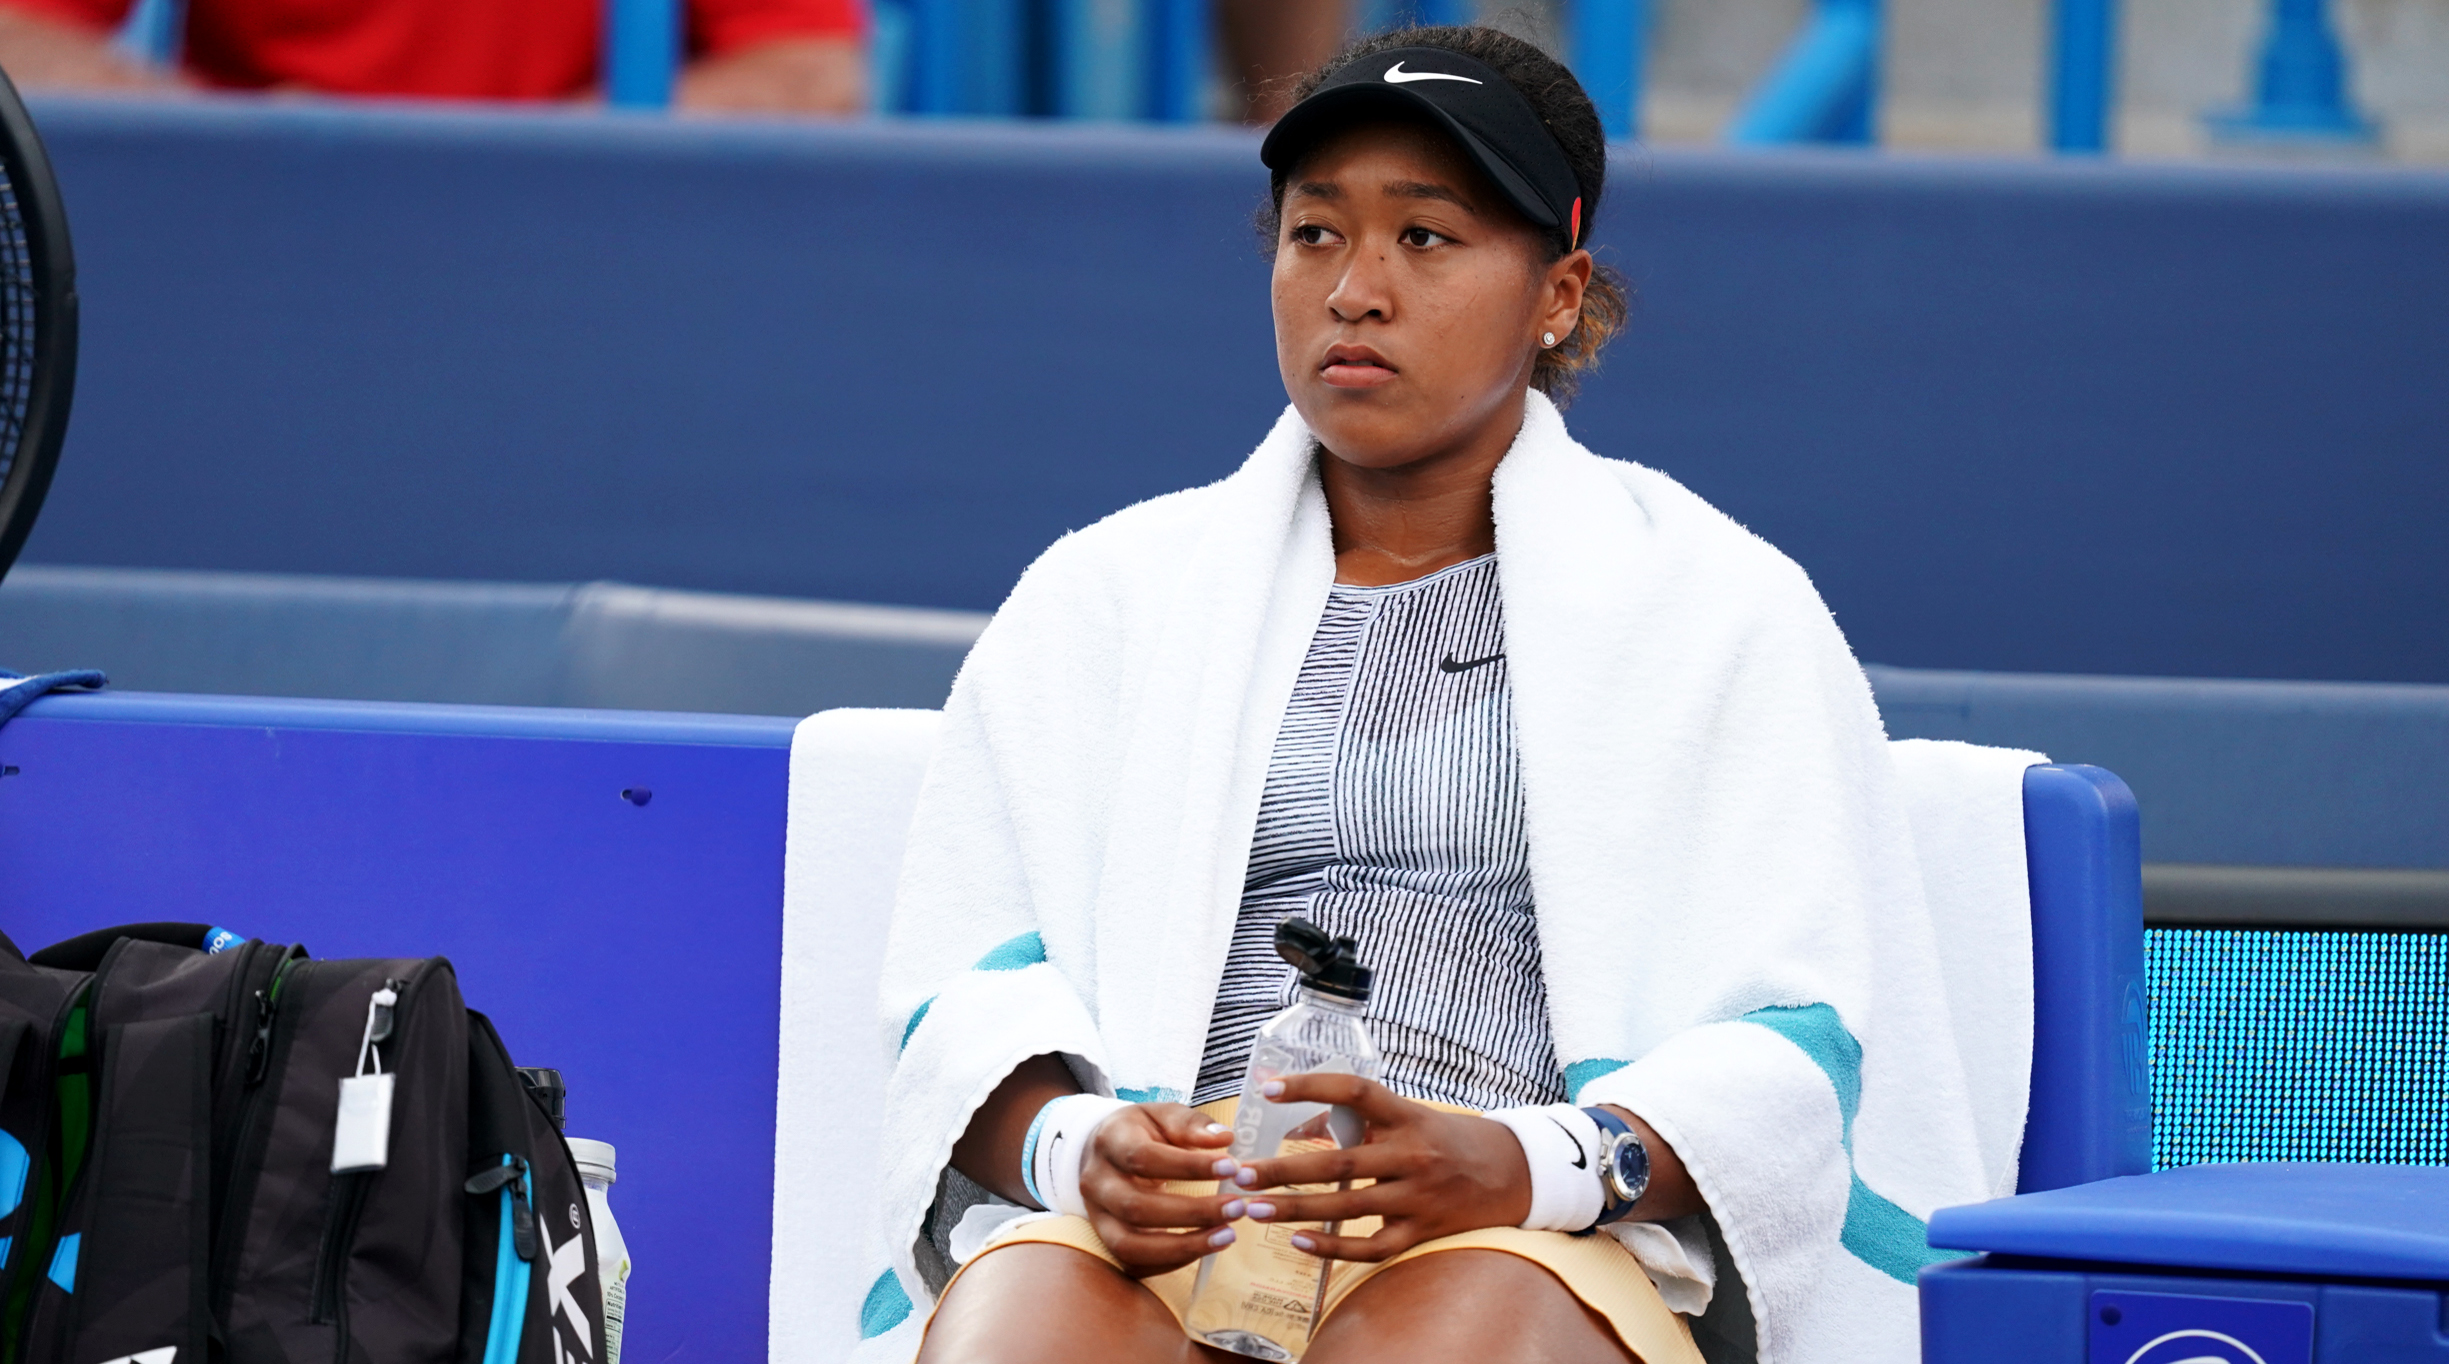 TENNIS: AUG 16 Western & Southern Open